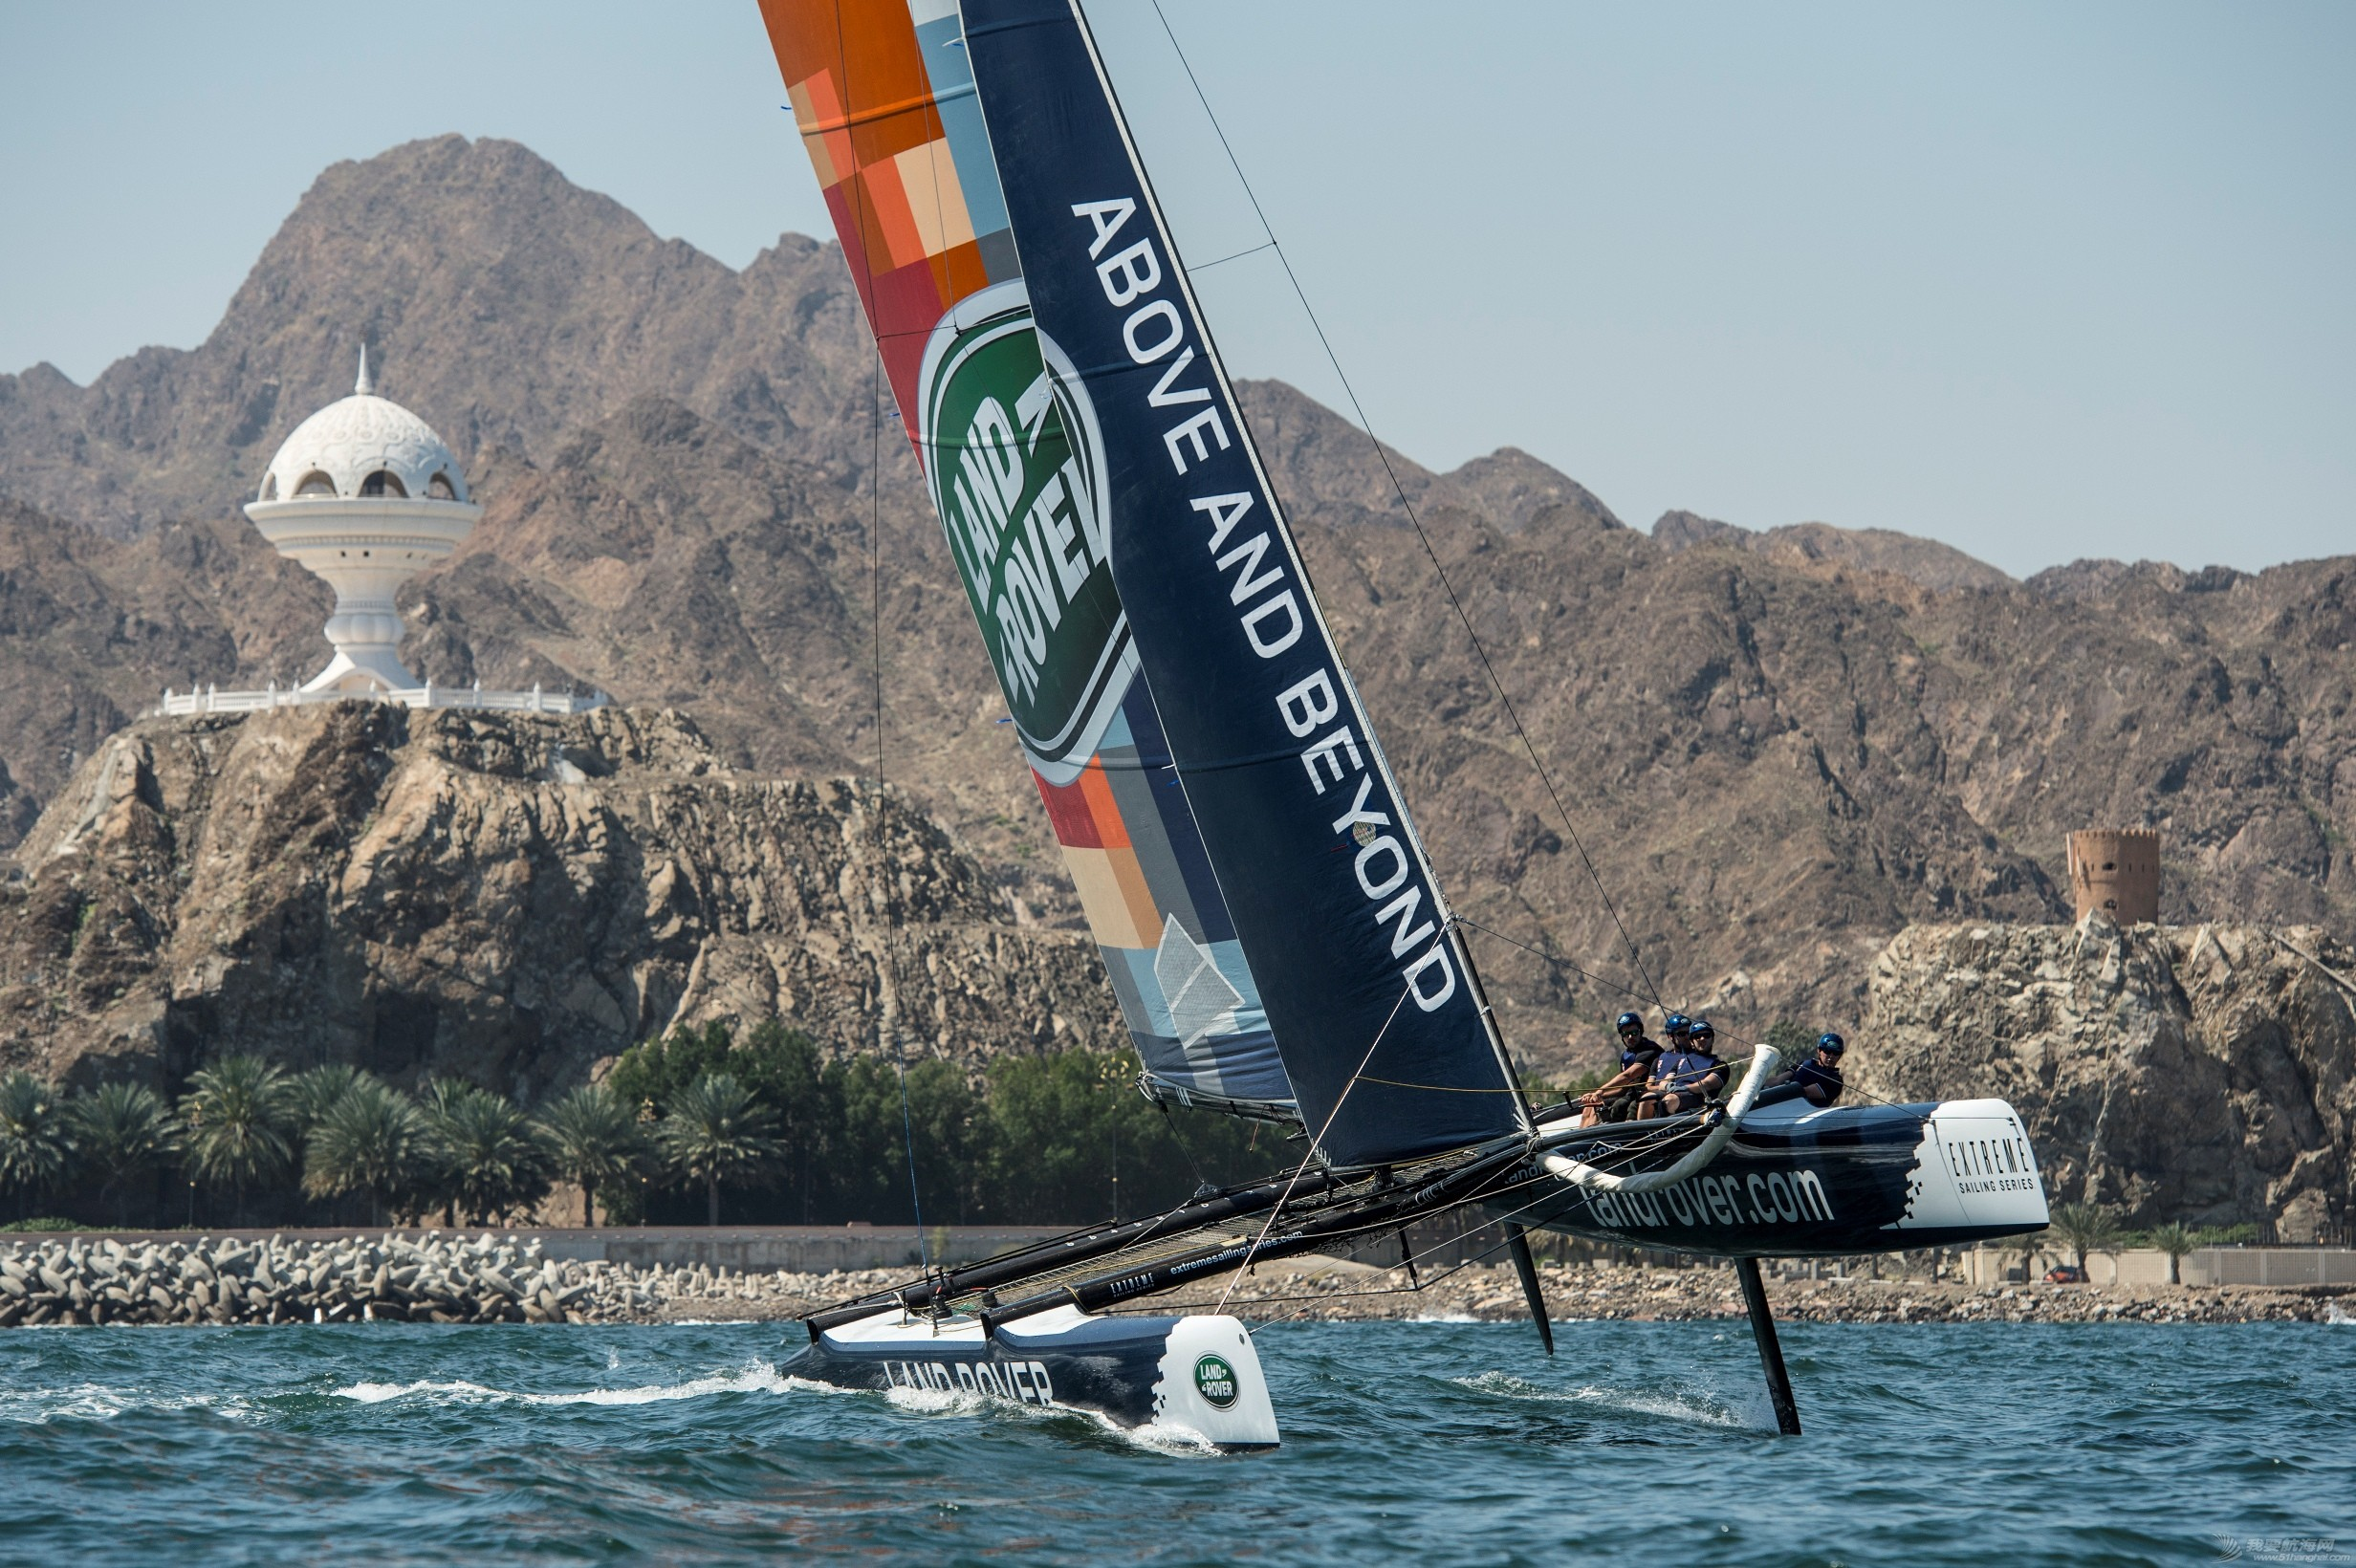 Land_Rover_and_Extreme_Sailing_Series?_enjoy_thrill_of_Stadium_Racing_in_Muscat_.jpg